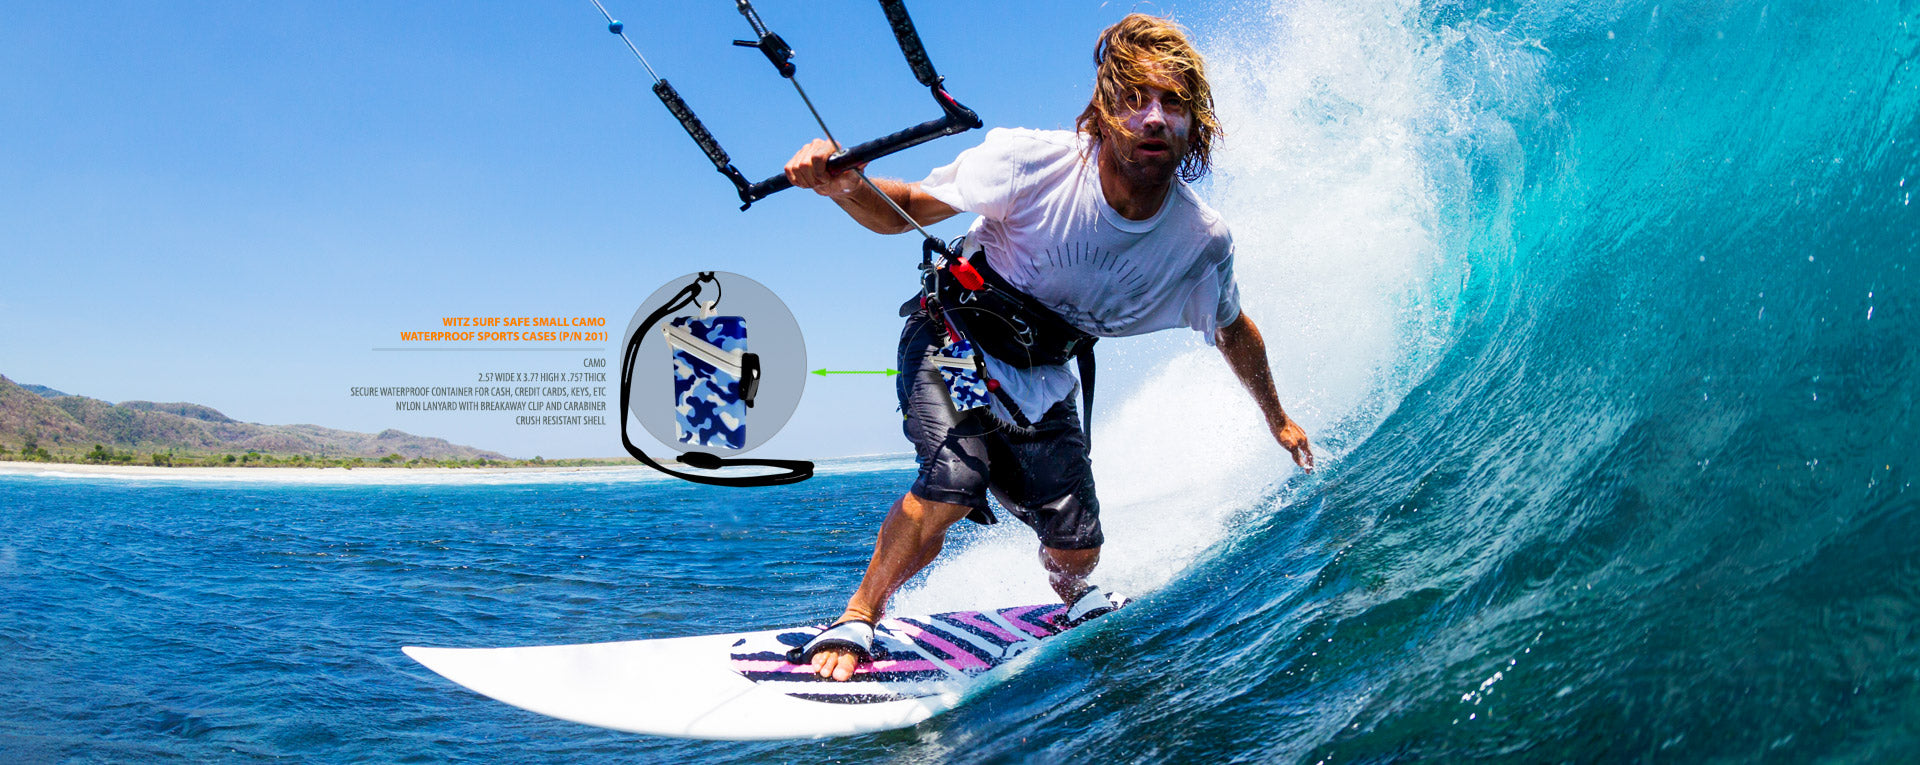 kiteboarder surfing with waterproof ID badge holder, click to view waterproof ID badge holders.